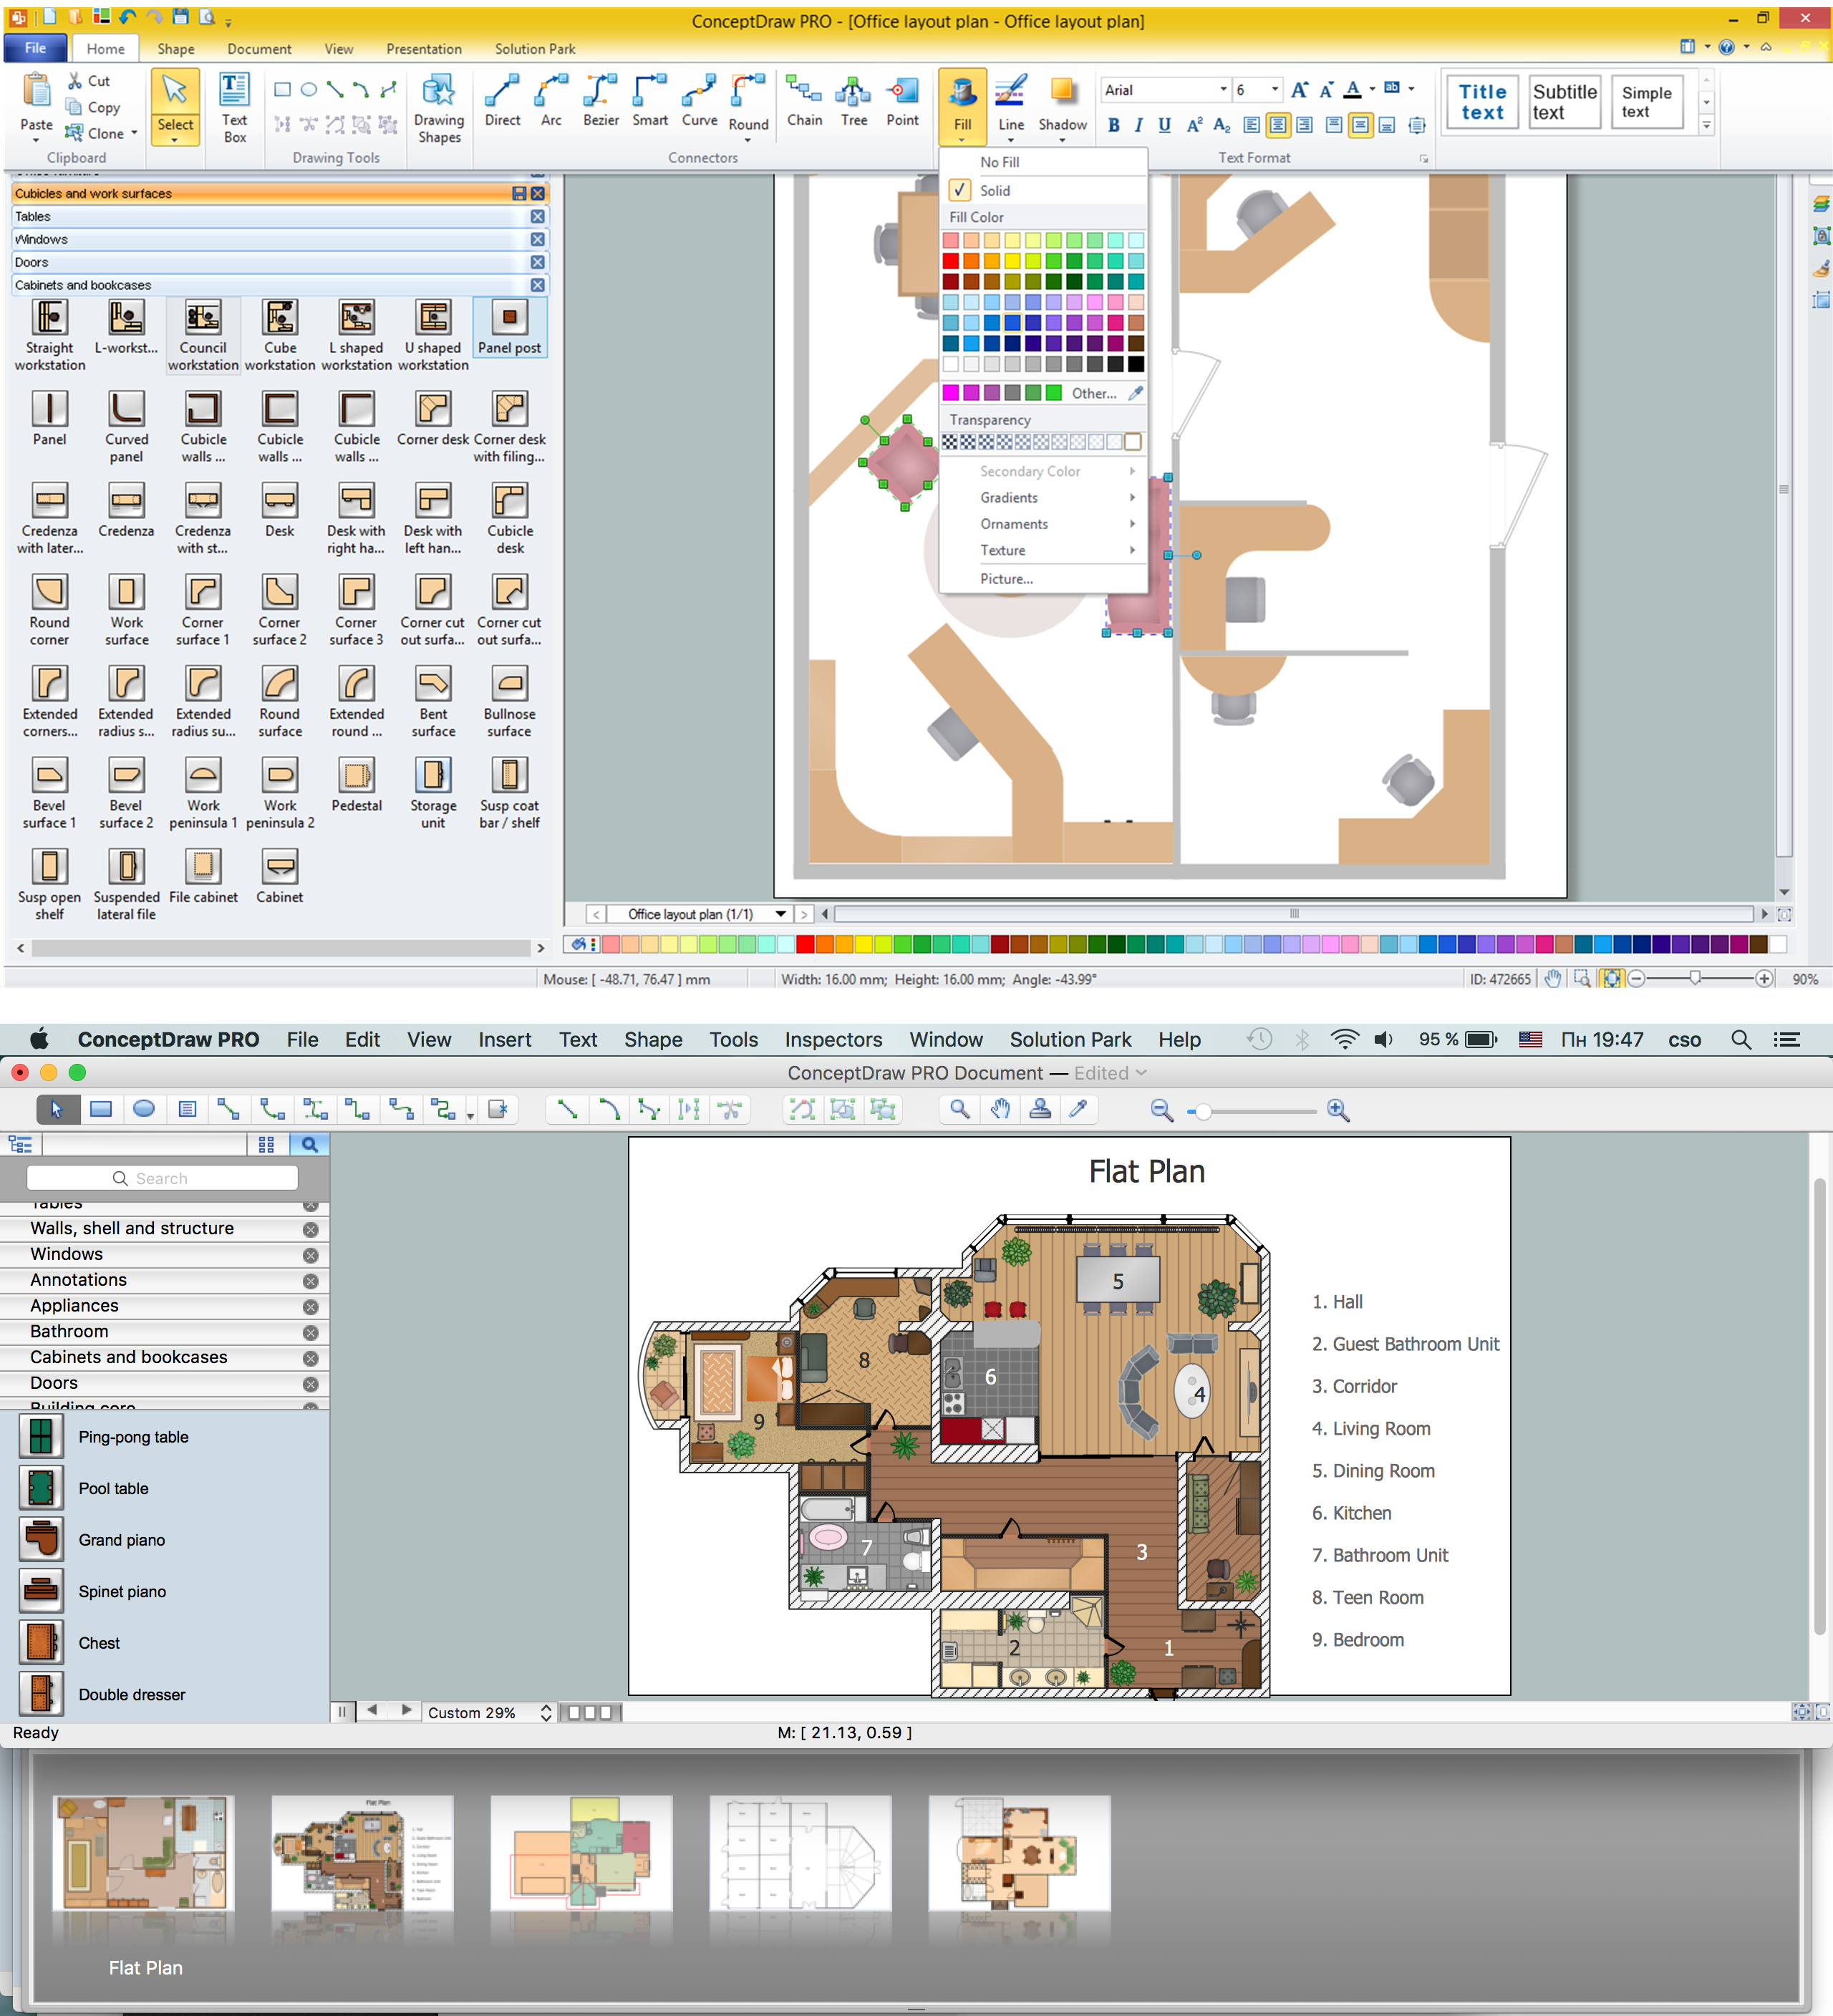 Office layout plans interior design office layout plan Building blueprint maker